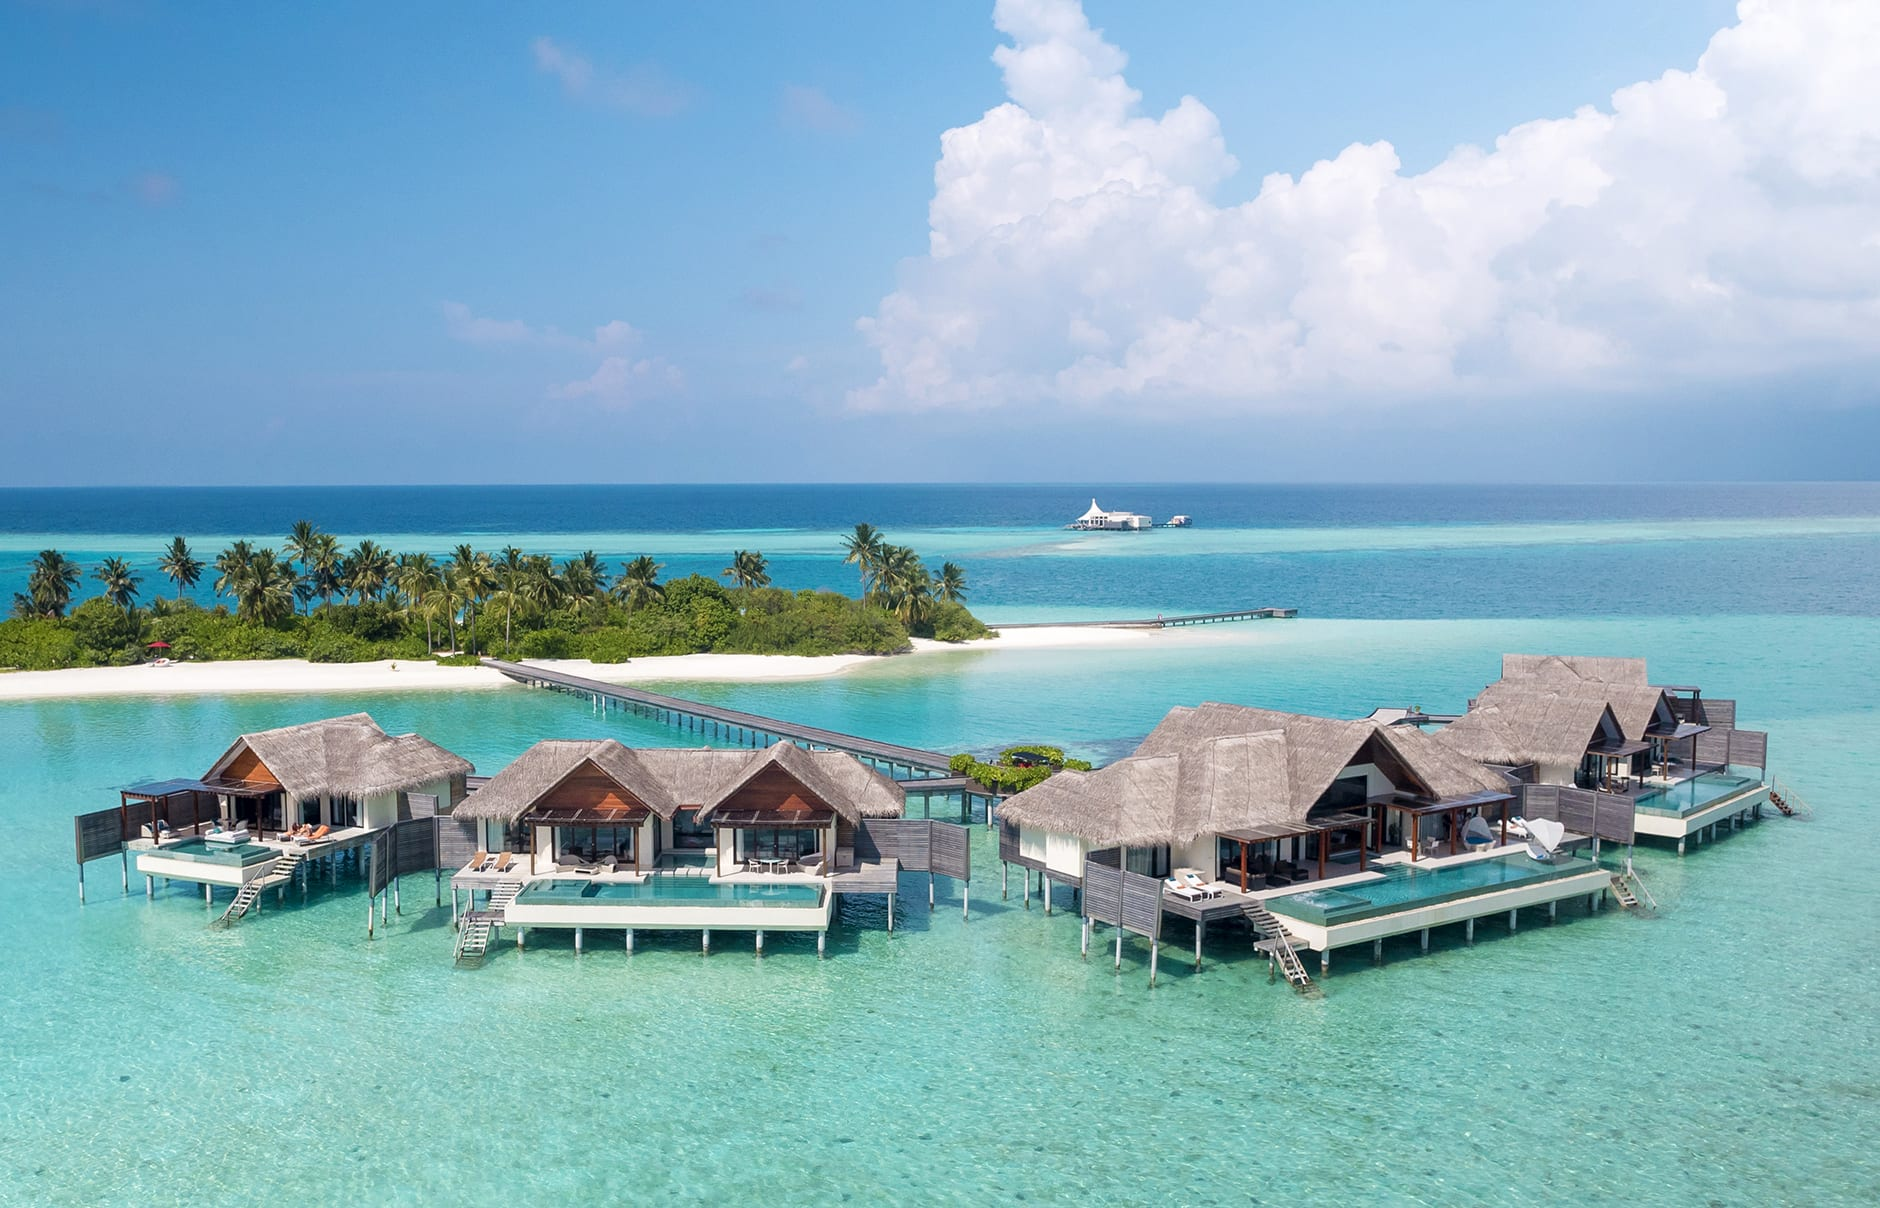 Niyama aerial. Niyama Private Islands Maldives. Hotel Review by TravelPlusStyle. Photo © NIYAMA